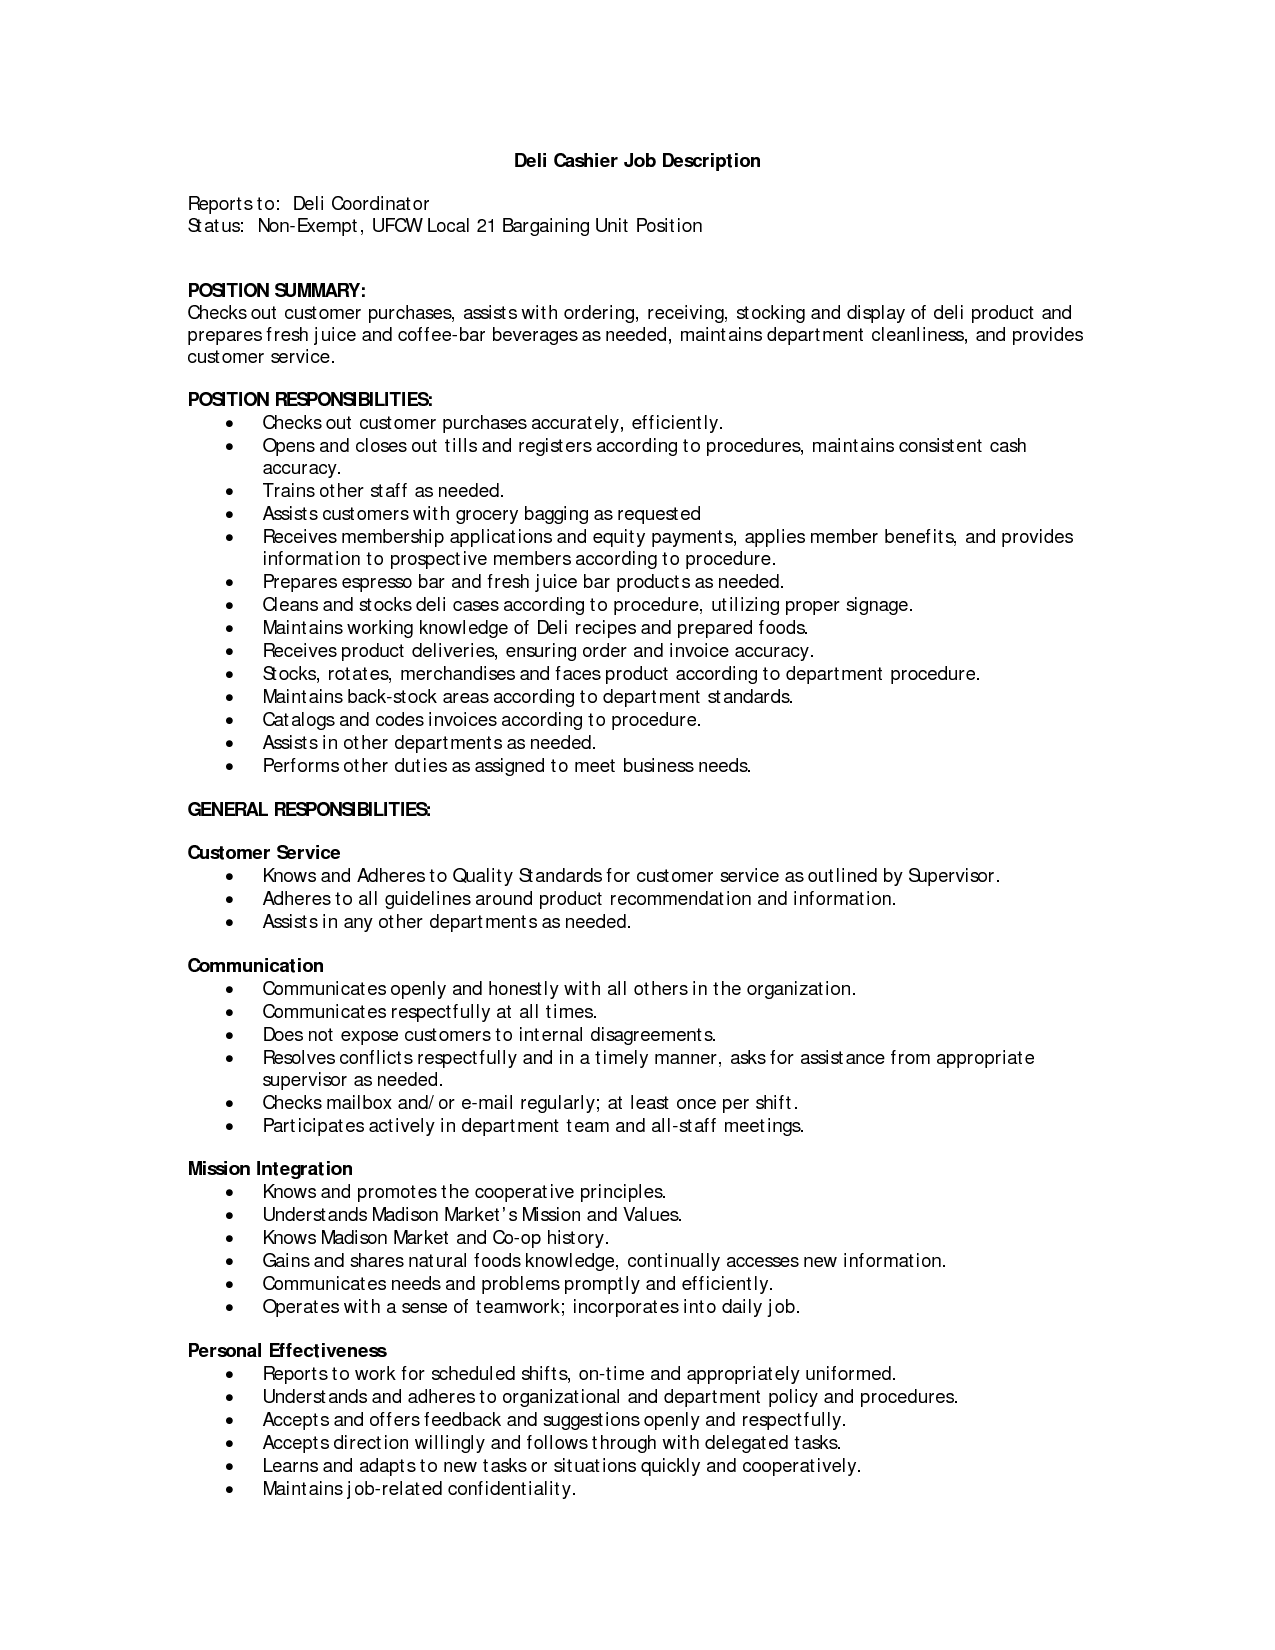 cashier job description resume customer service resume - Cashier Duties And Responsibilities Resume